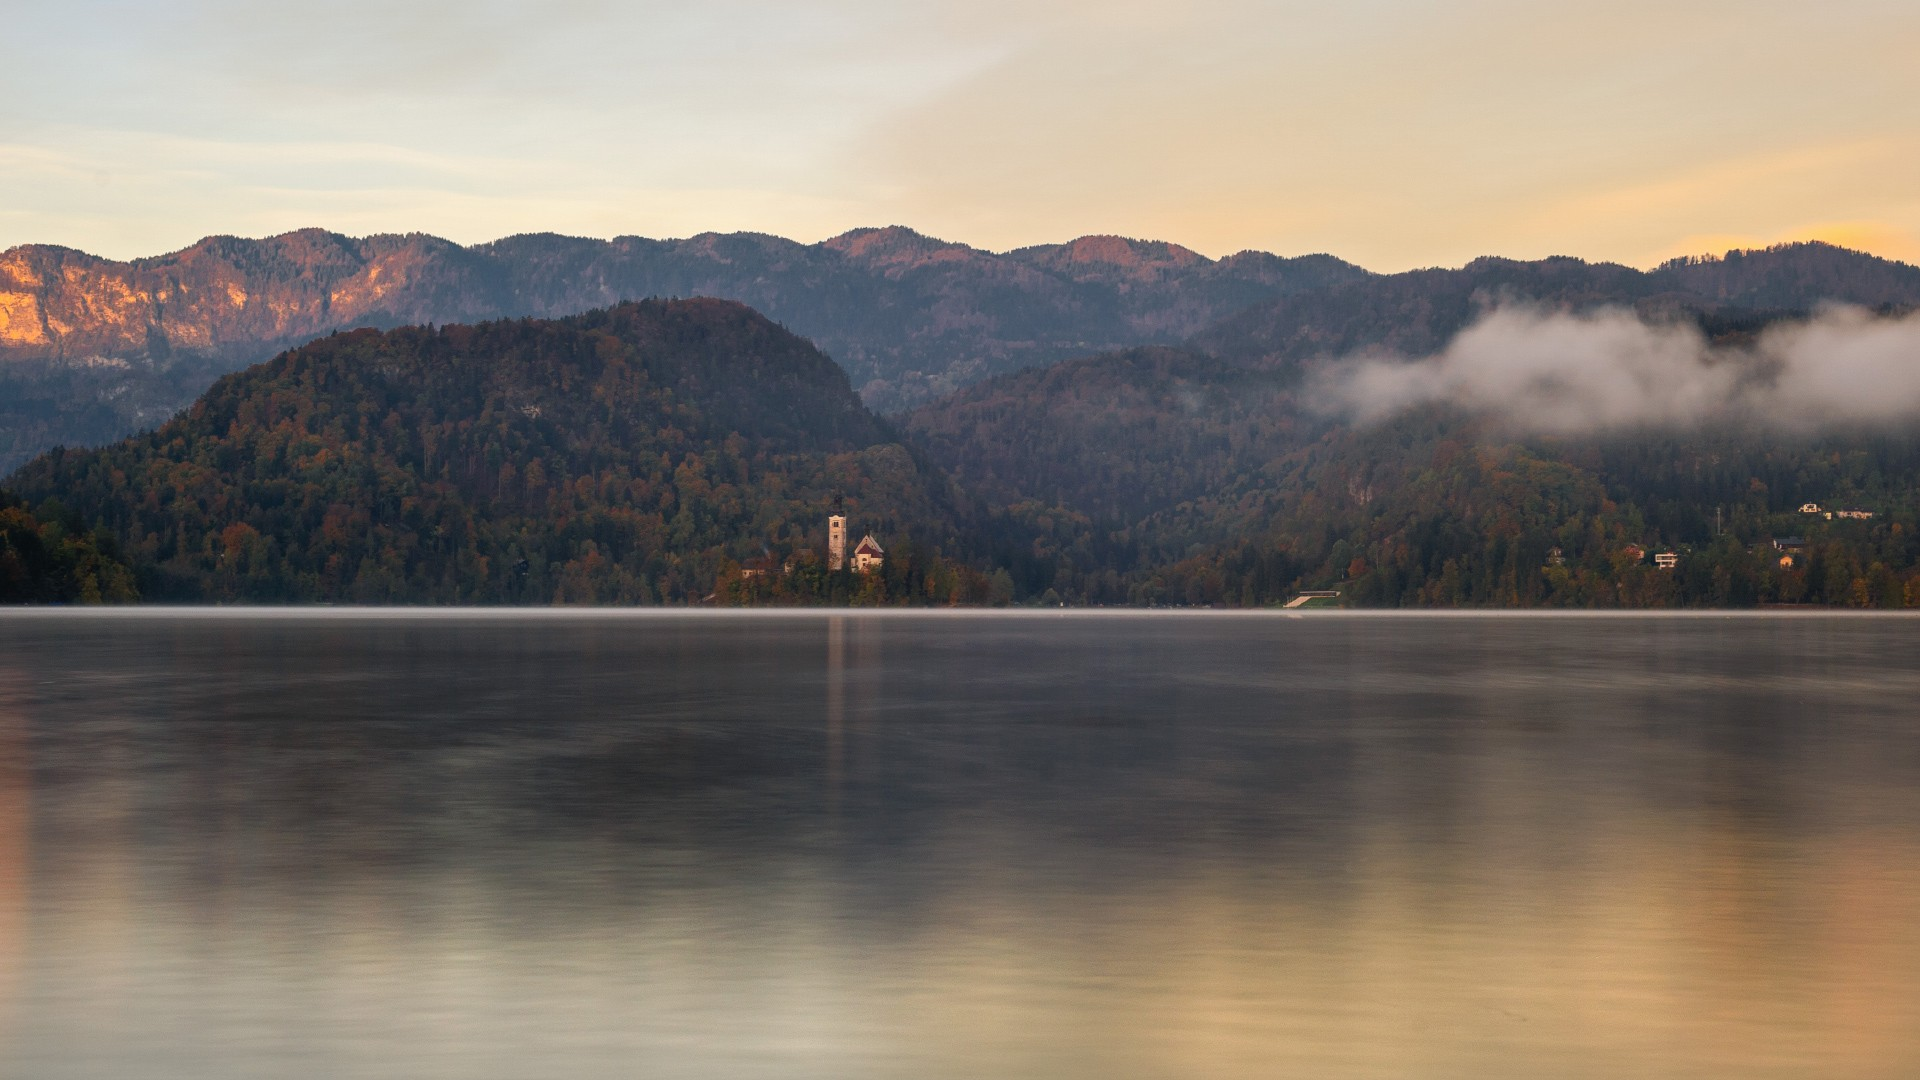 Bled: Magical lake in the foothills of the Julian Alps